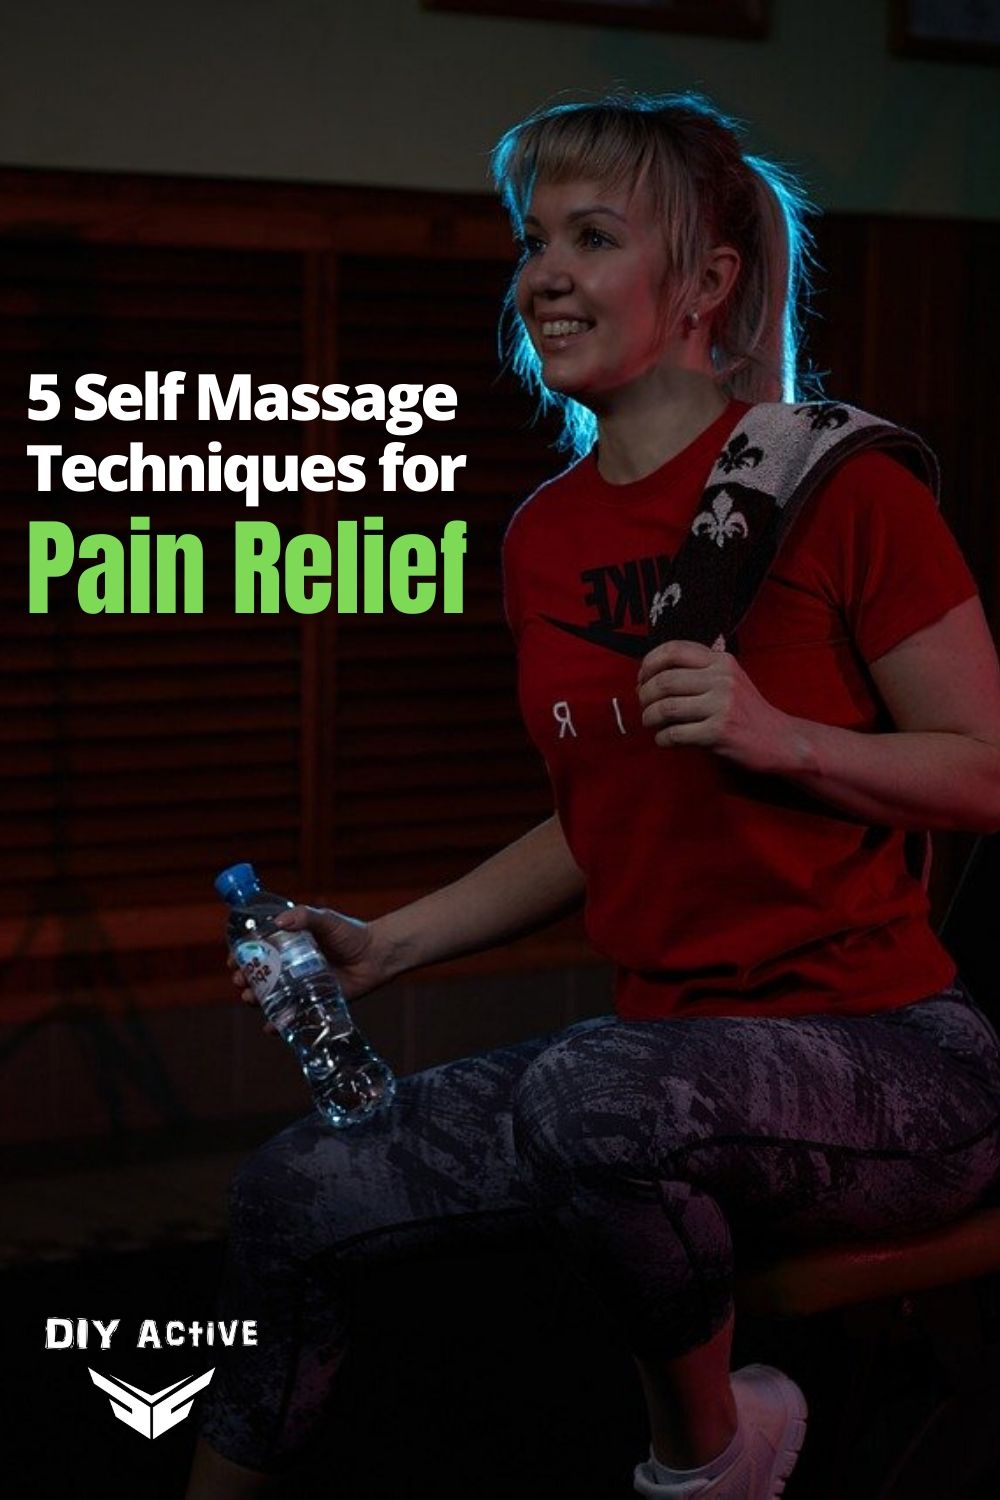 5 Self Massage Techniques for Pain Relief